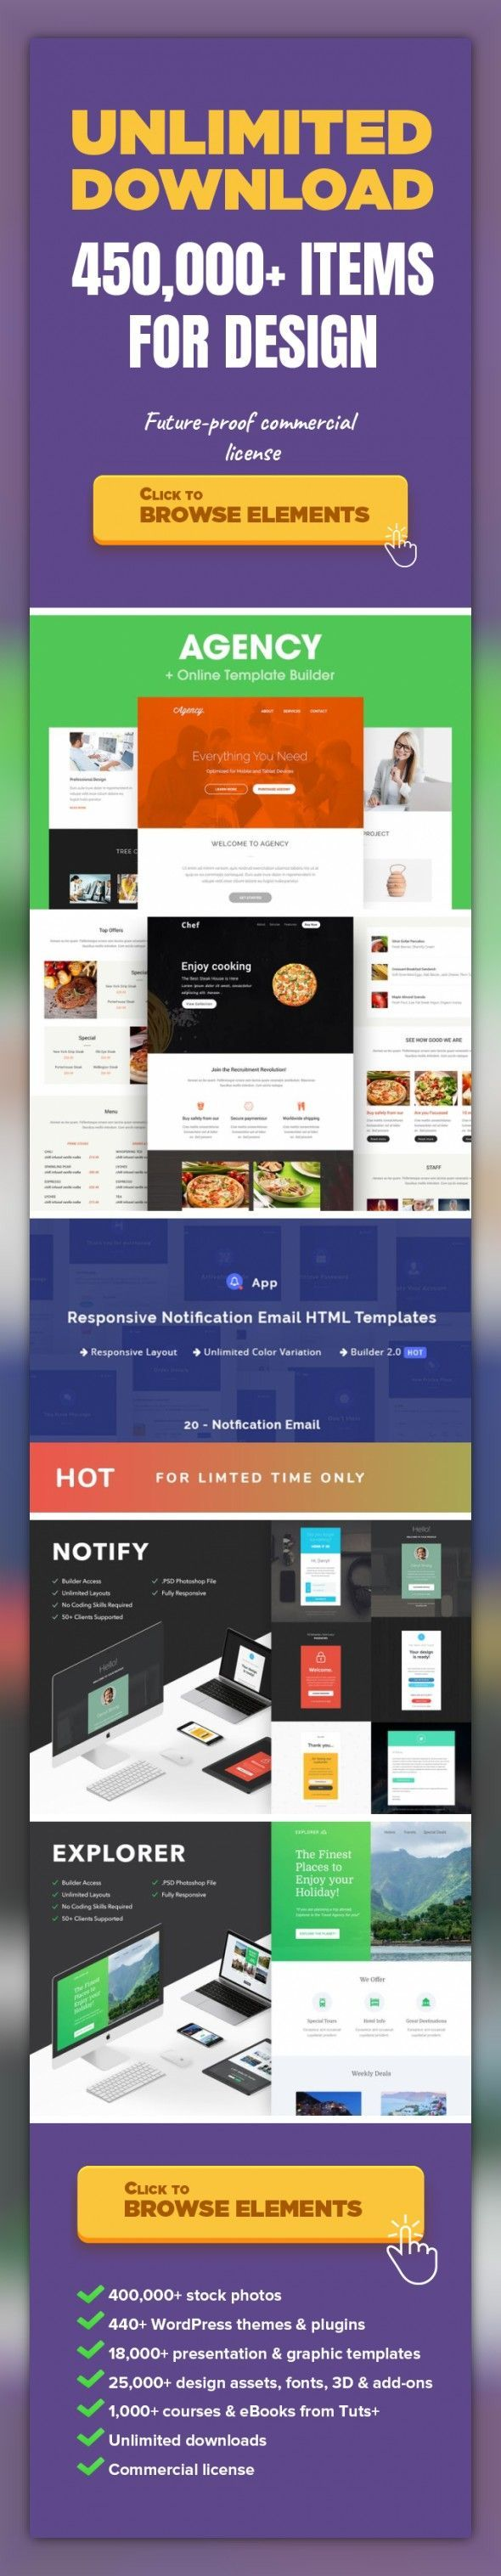 Agency Responsive Email Template Web Templates Email Templates - Mailchimp mobile templates